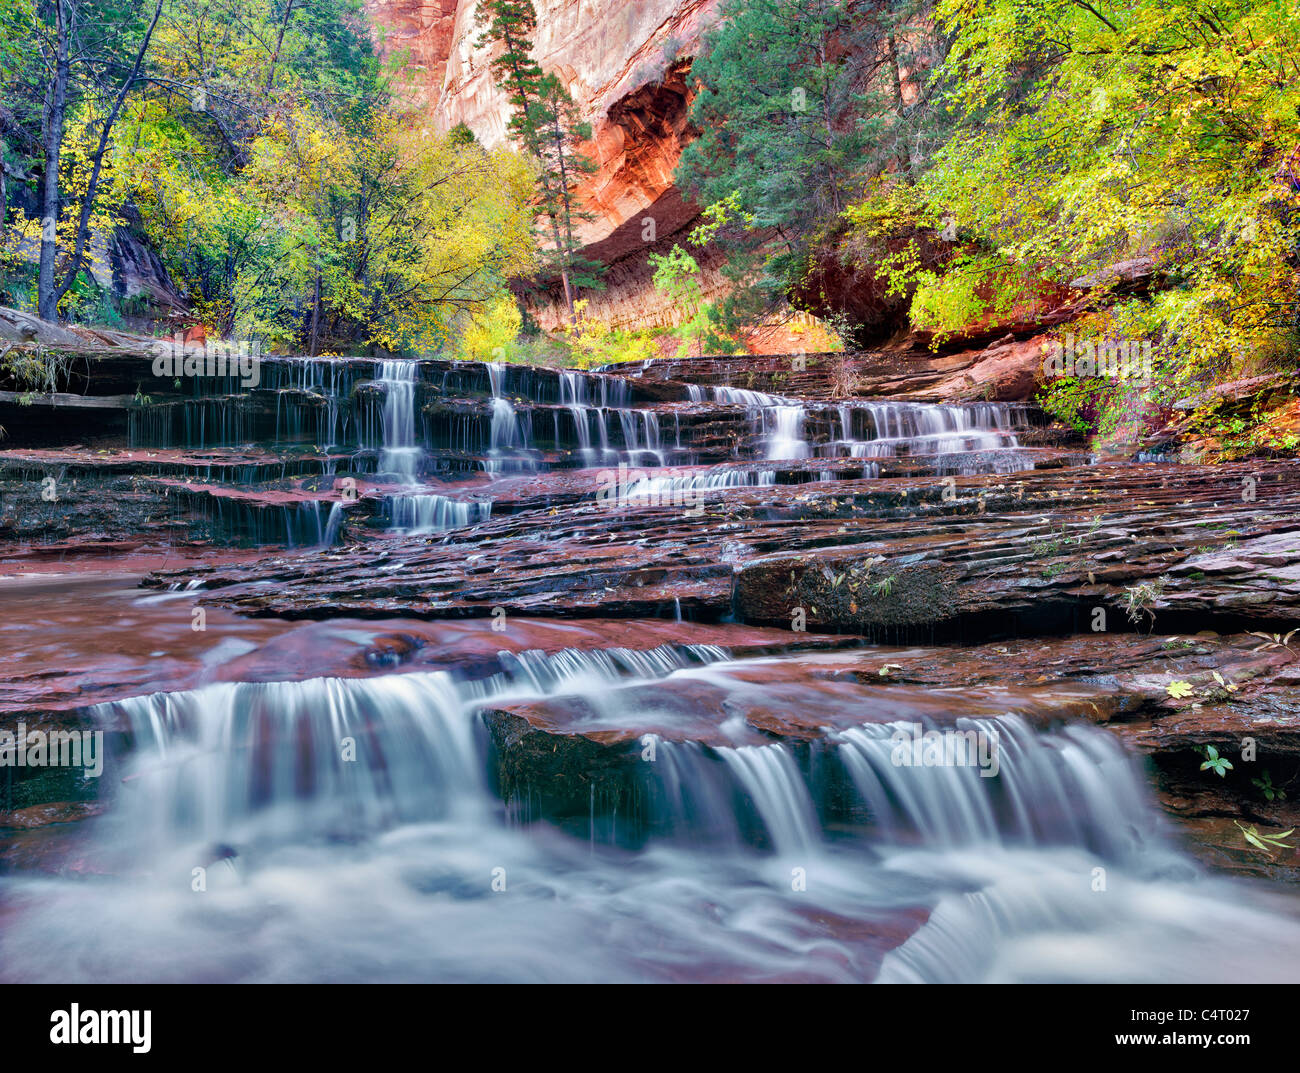 Archangel falls and fall color. Left Fork of North Creek. Zion National Park, Utah. - Stock Image